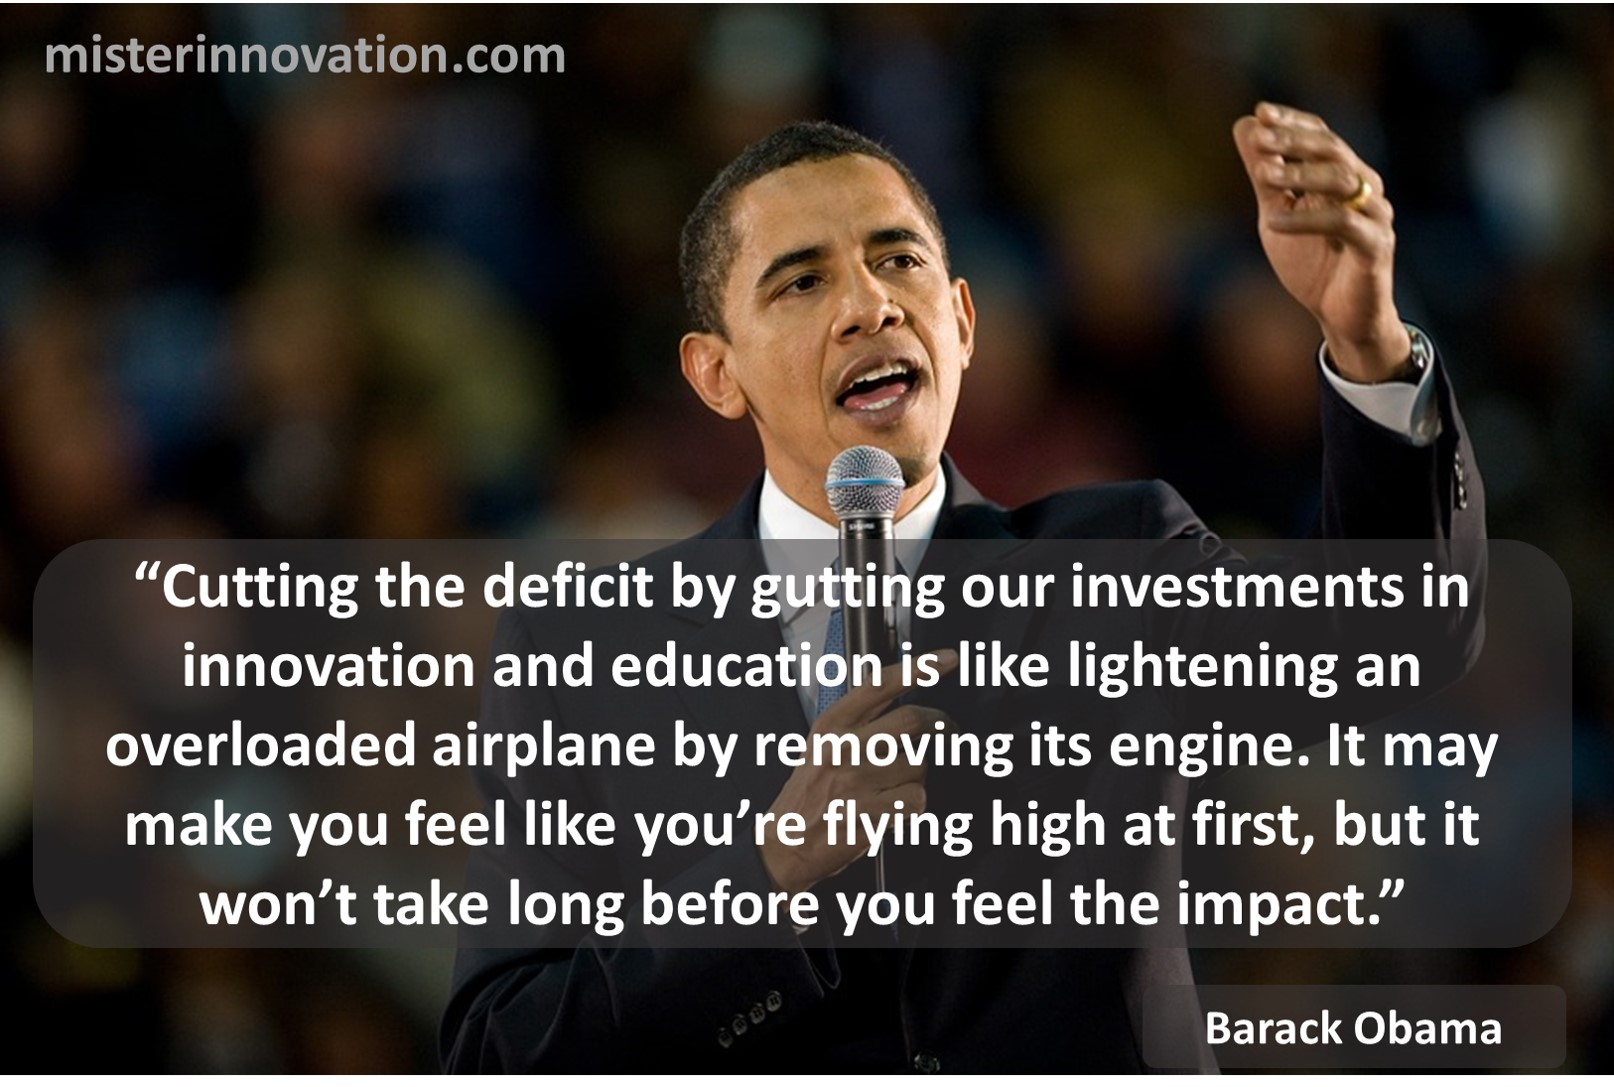 Obama Qupte on Innovation and Education Investment